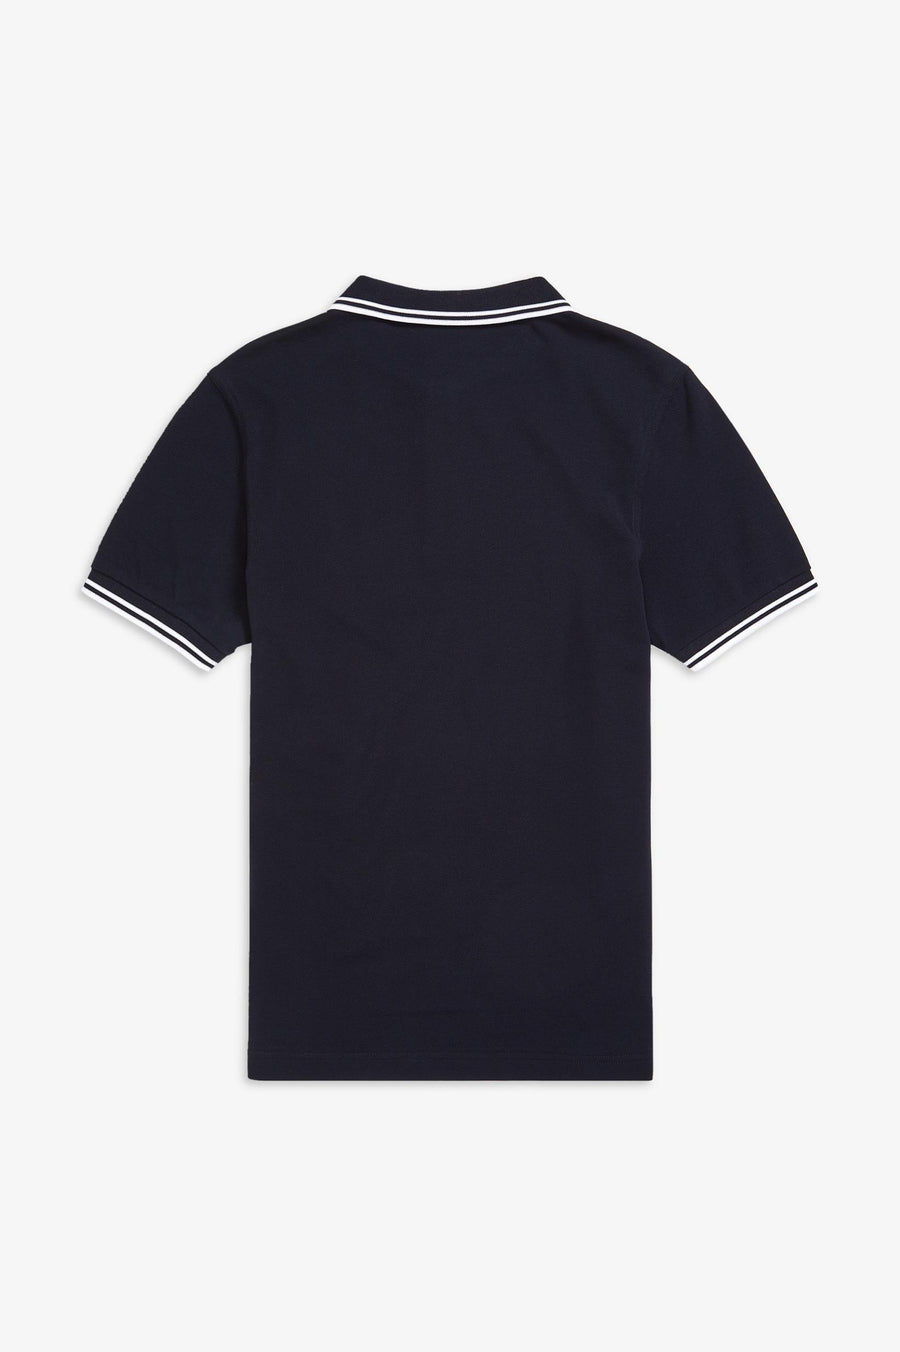 Twin Tipped Fred Perry Shirt / Navy-White-White